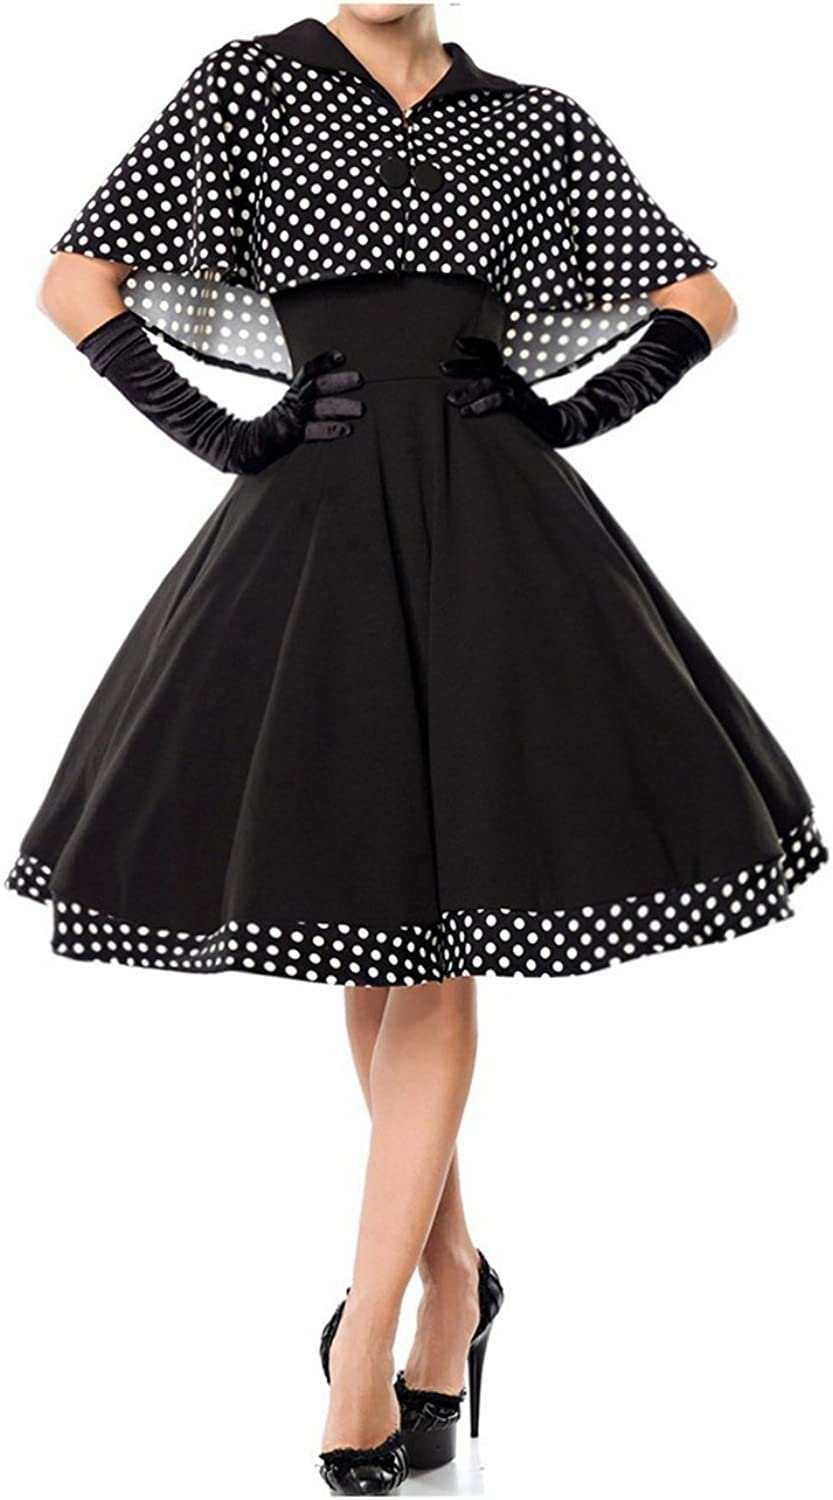 Belsira Ladies Swing Dress with Cape in Retro Style